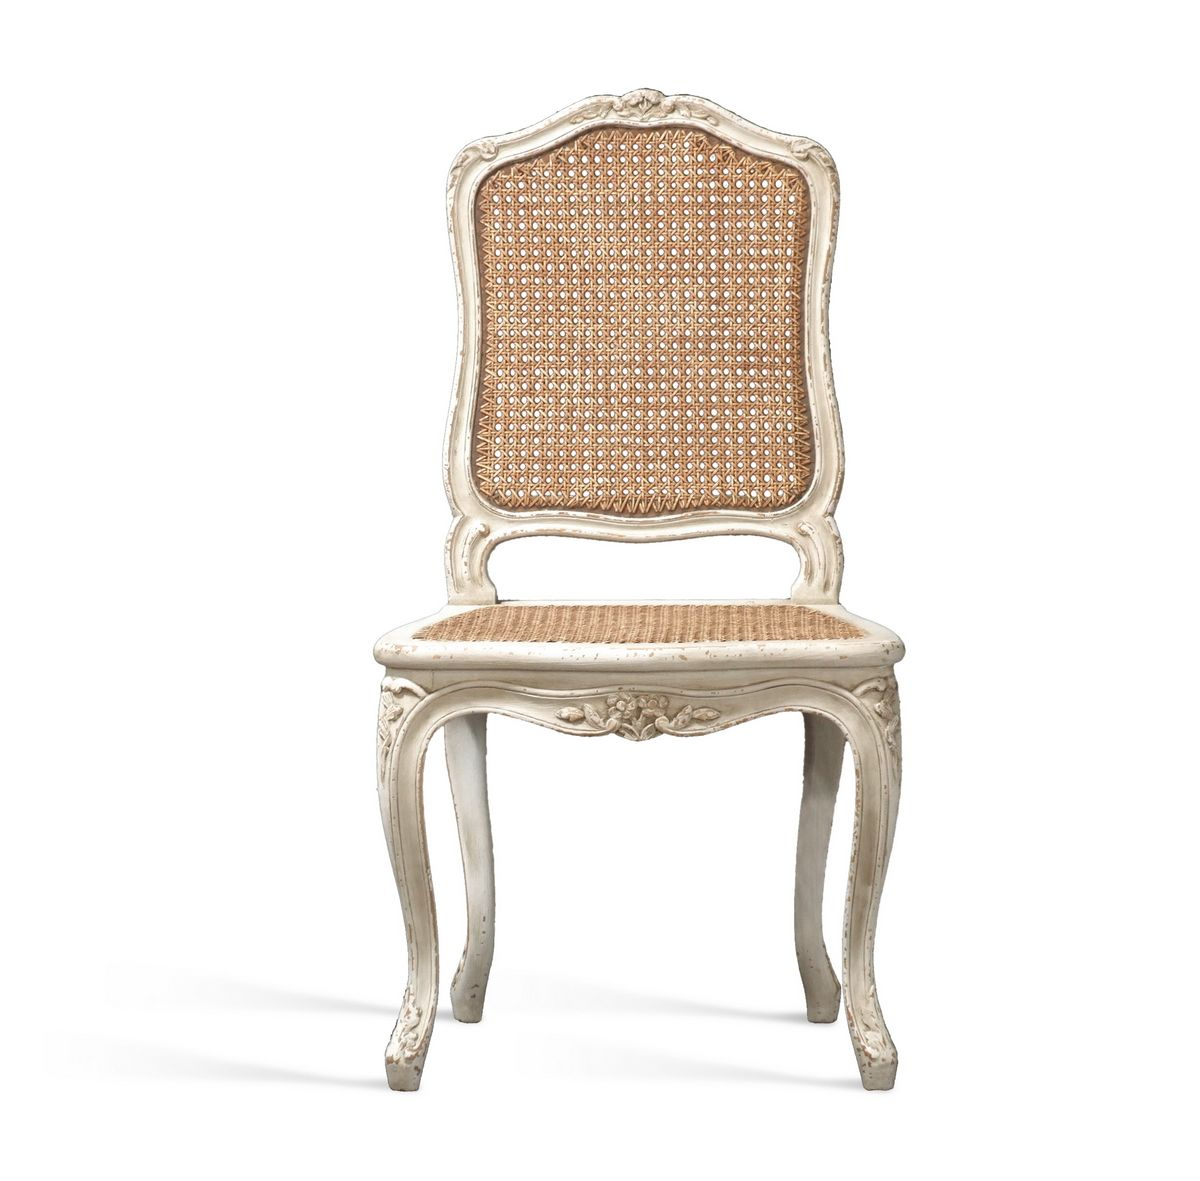 louis xv chair la reine with caned seat back. Black Bedroom Furniture Sets. Home Design Ideas